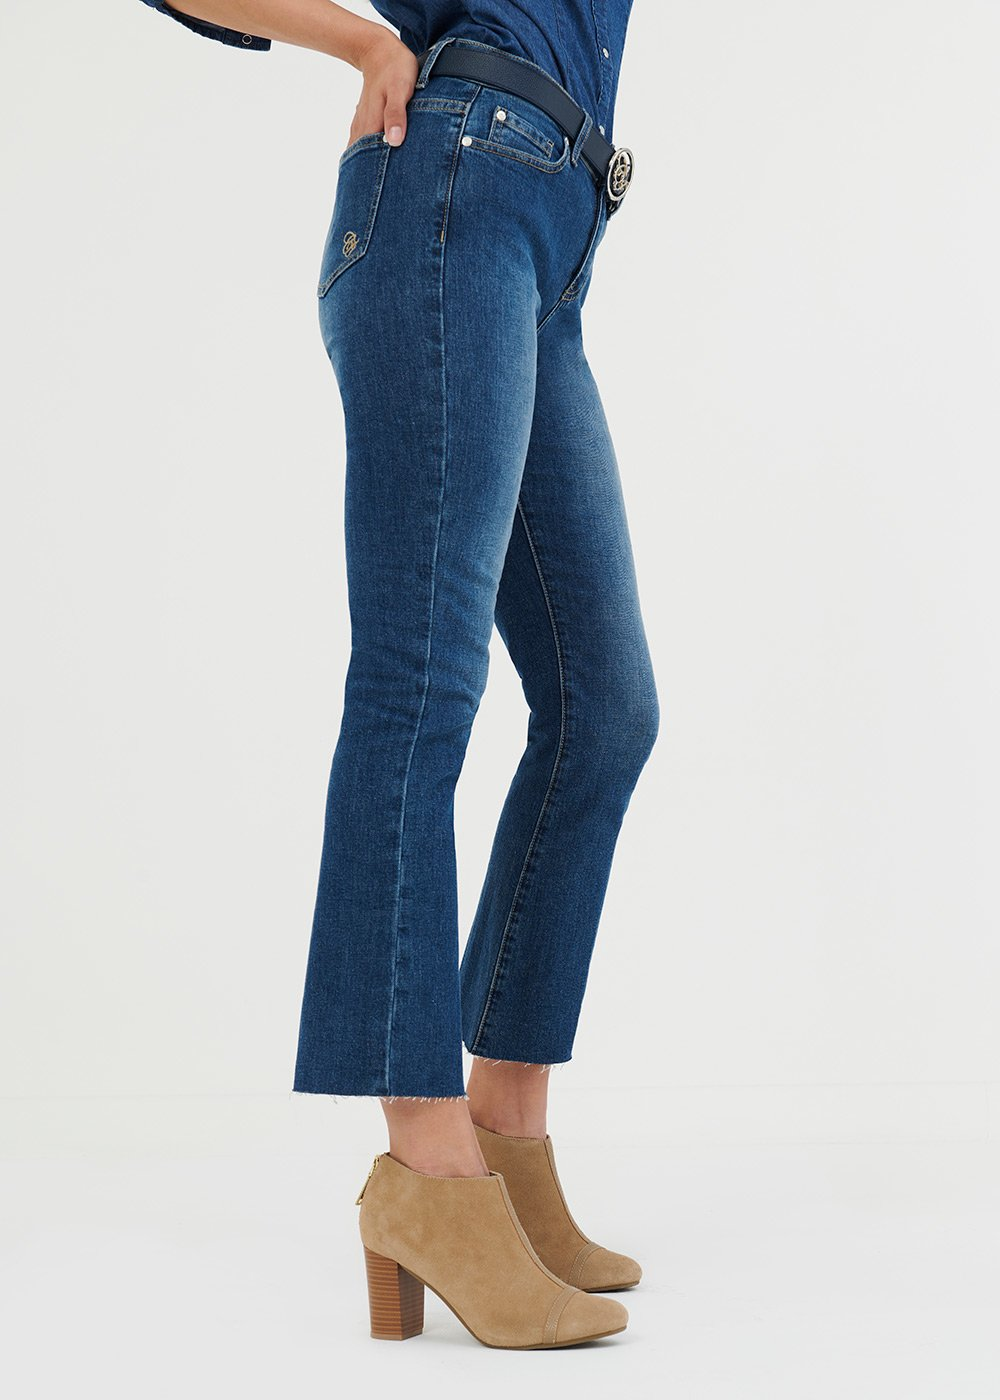 Denim Darel a zampa con fondo sfangiato - Medium Denim - Donna